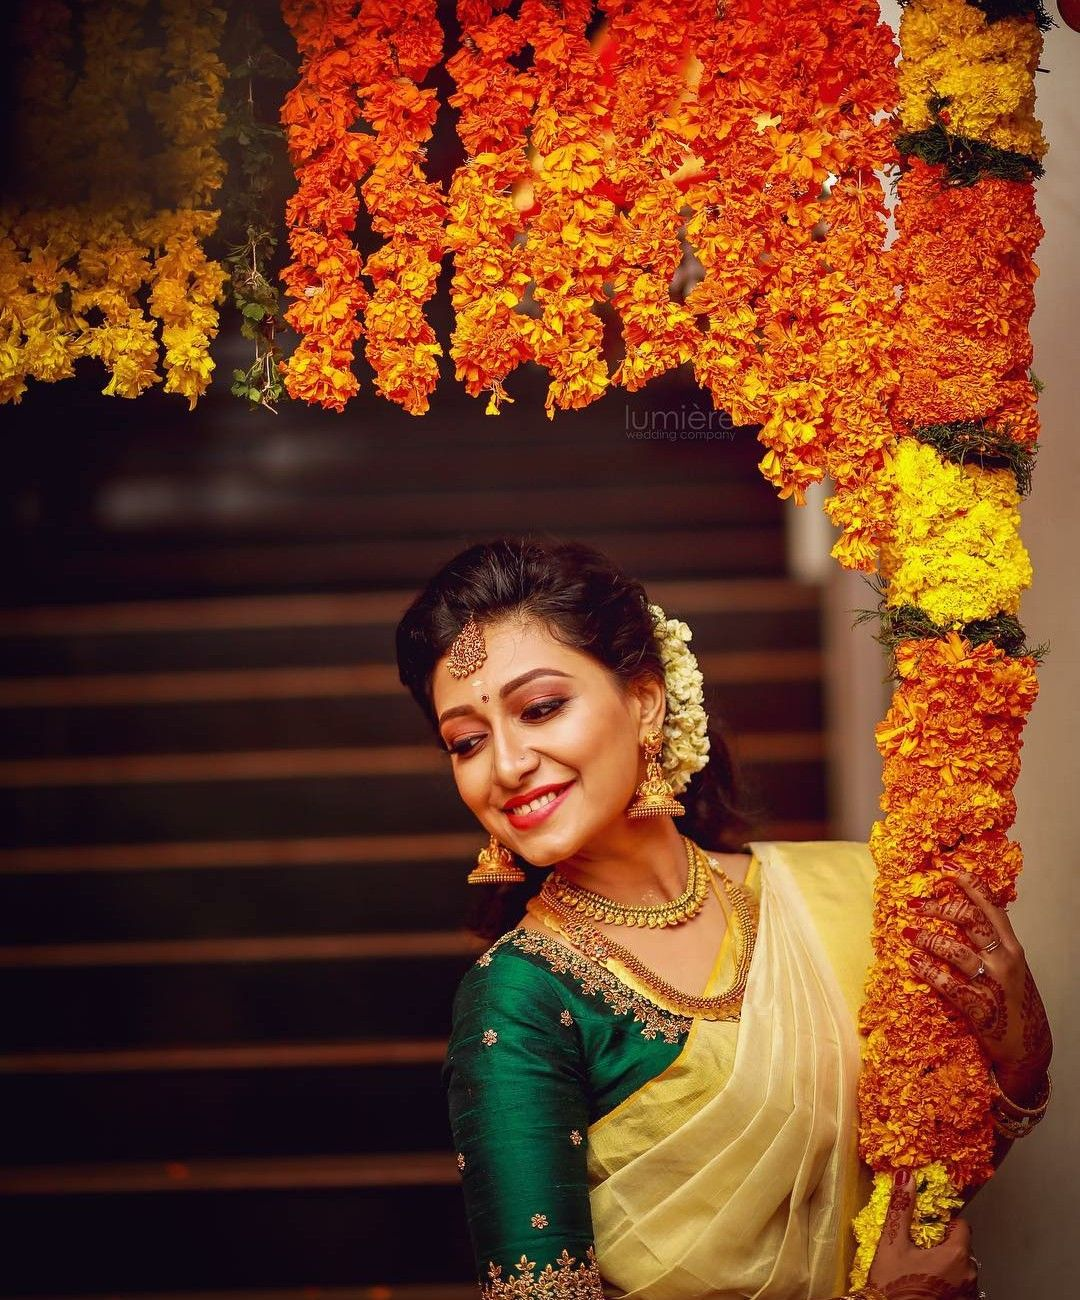 Sshivada In Kerala Saree In 2020 Kerala Saree Blouse Designs Set Saree Kerala Saree